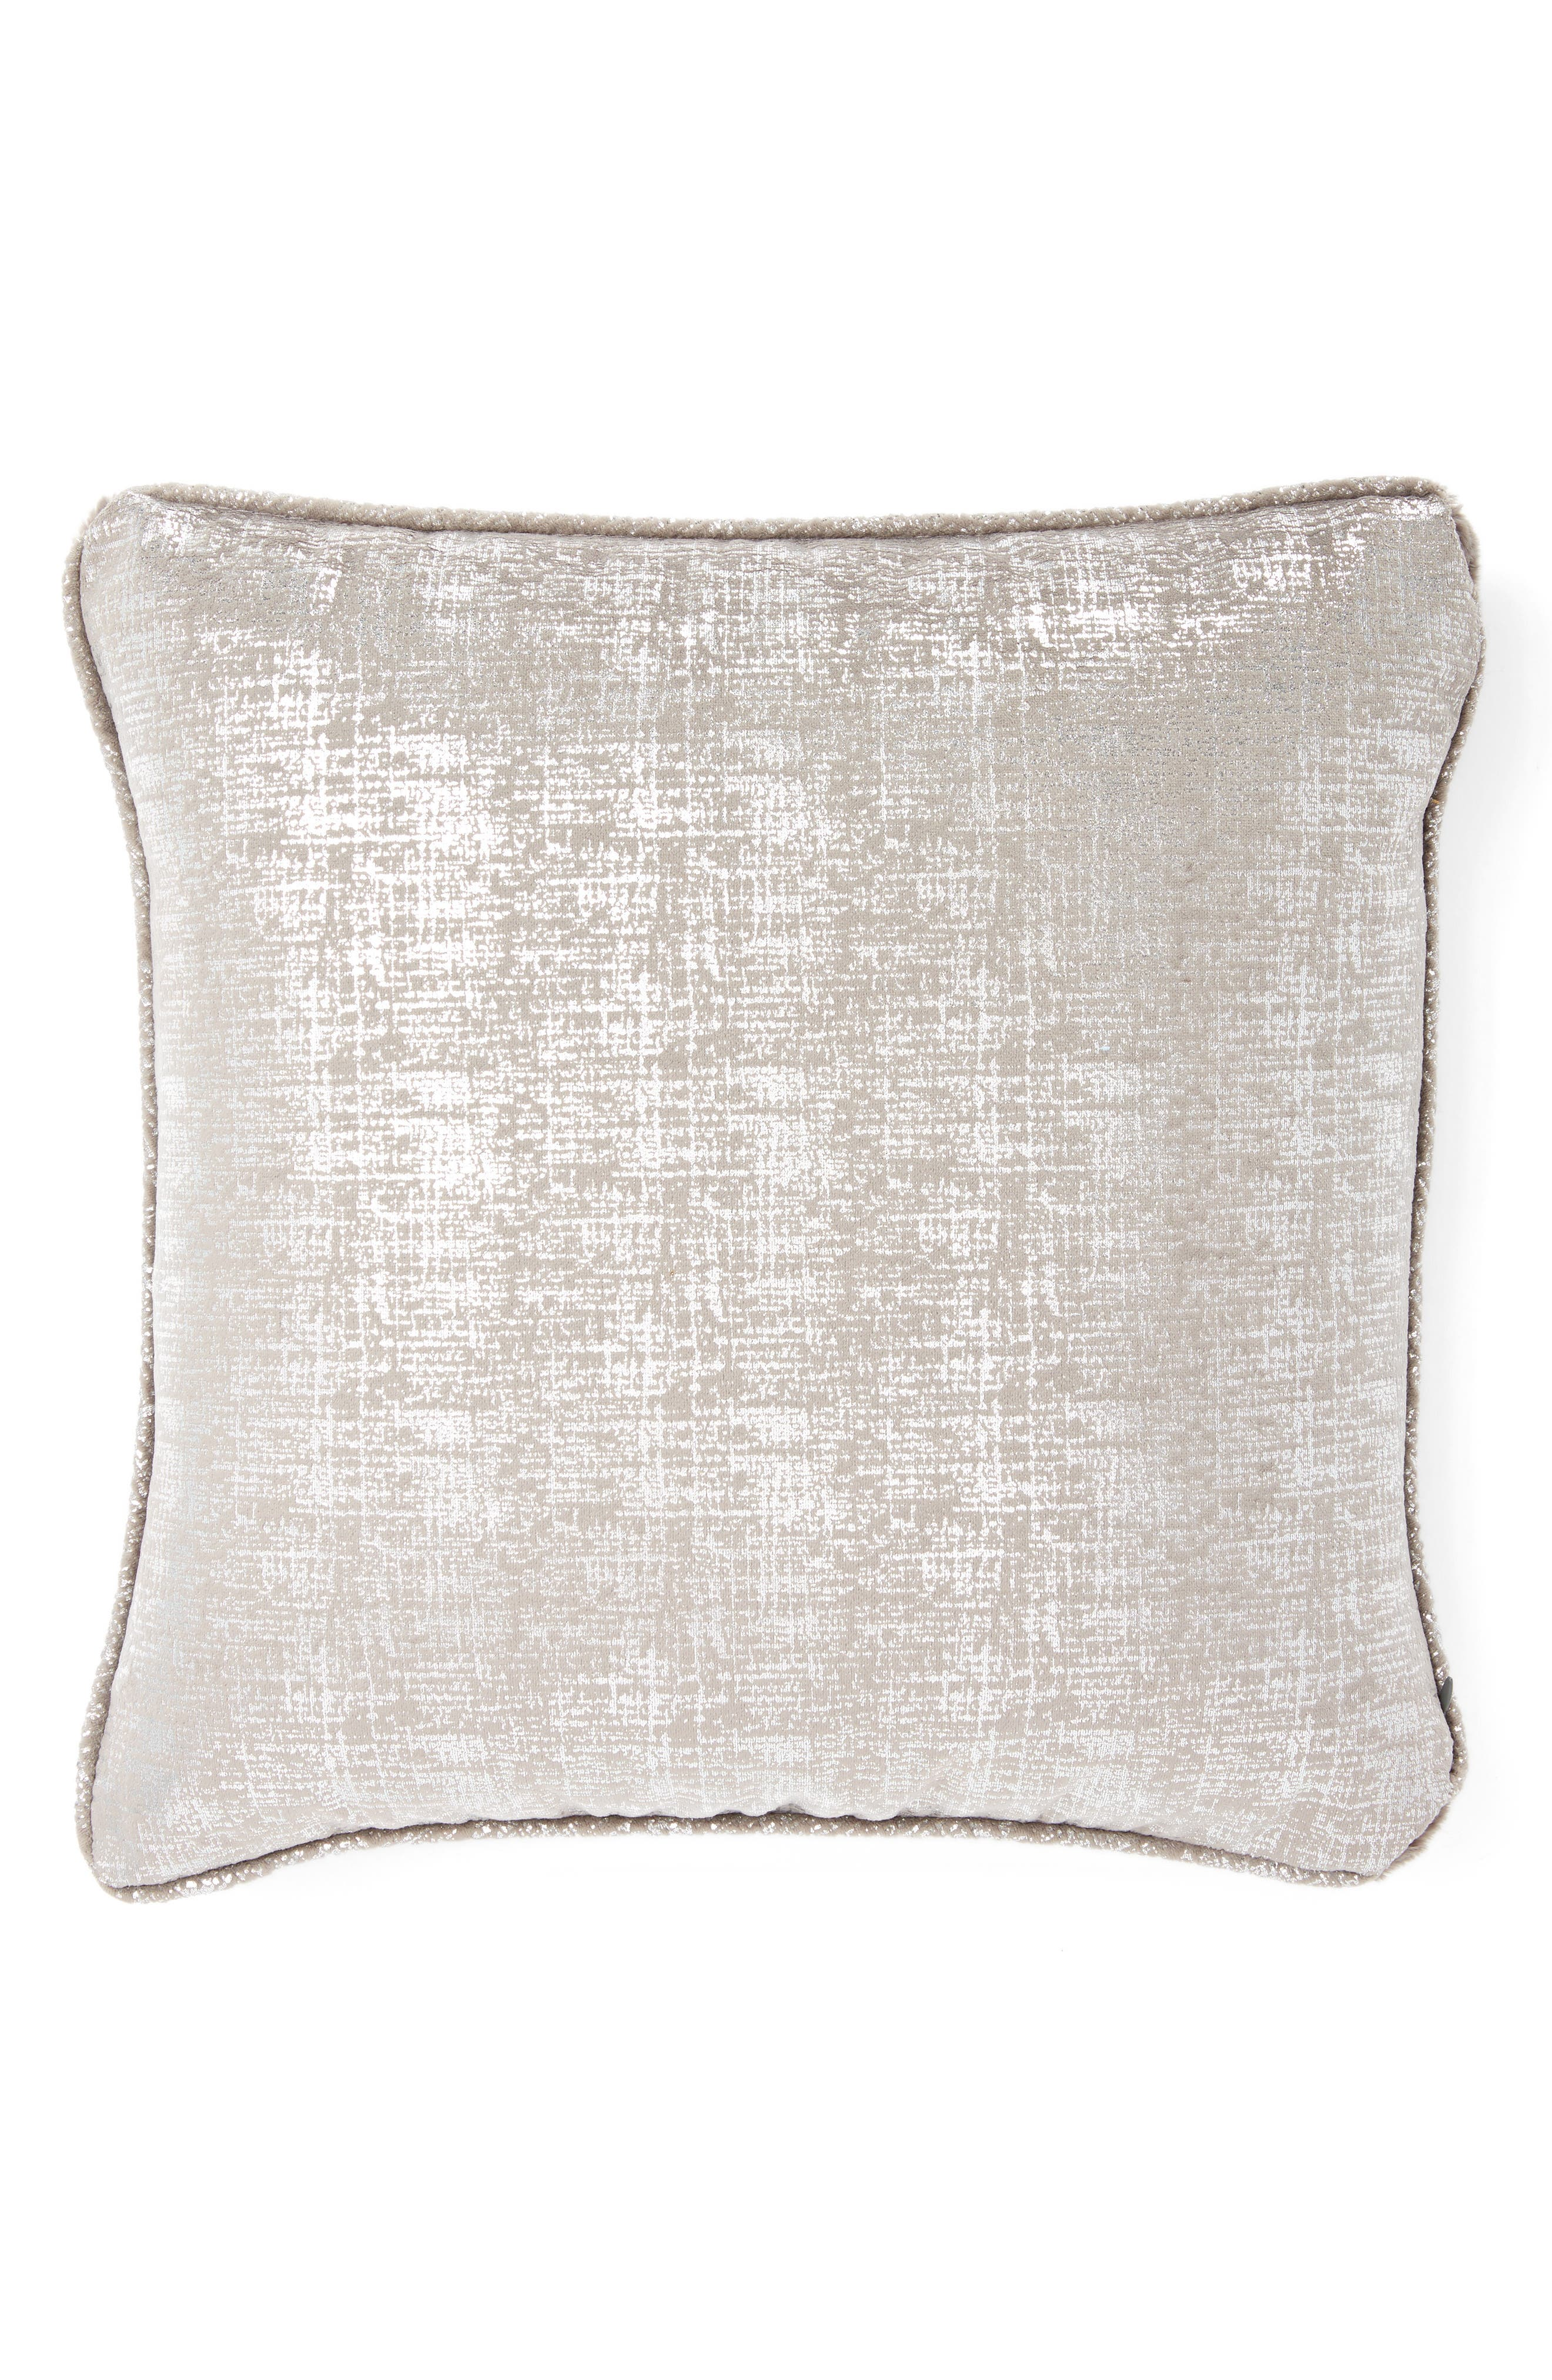 Luxe<sup>™</sup> Lustre Pillow,                             Alternate thumbnail 2, color,                             Charcoal